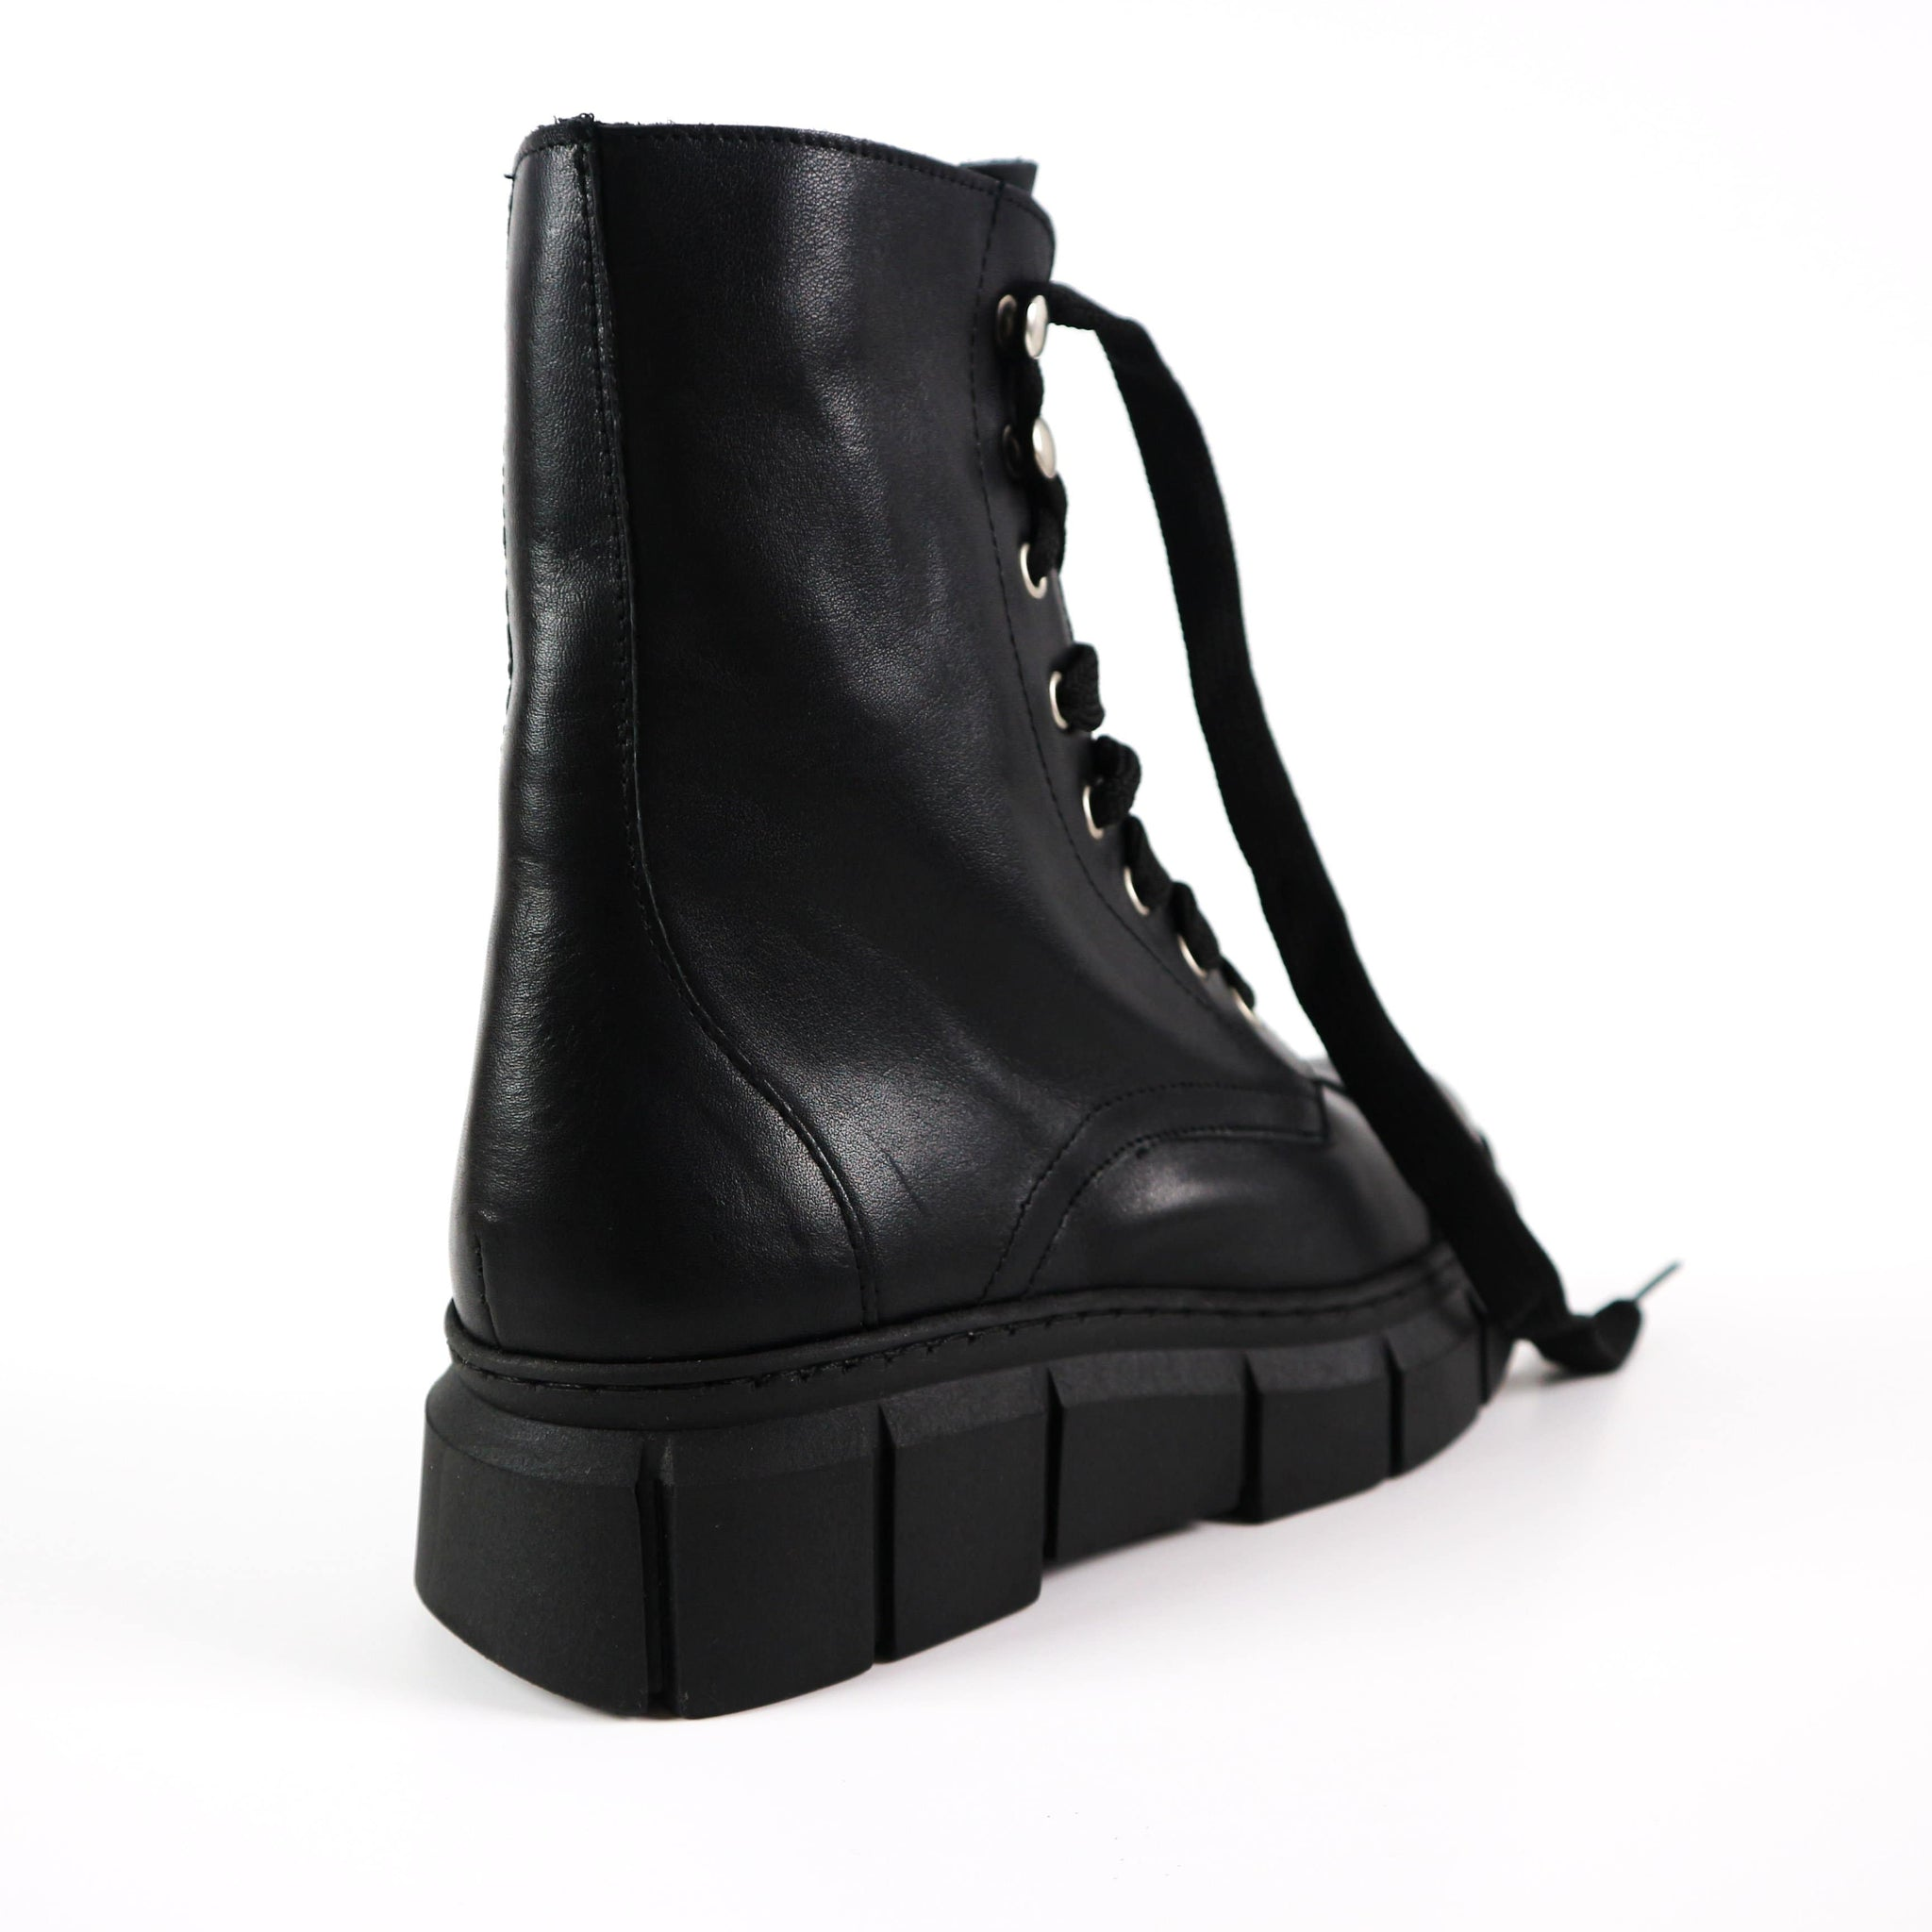 BECKY | Funky Black Boots - TrystShoes